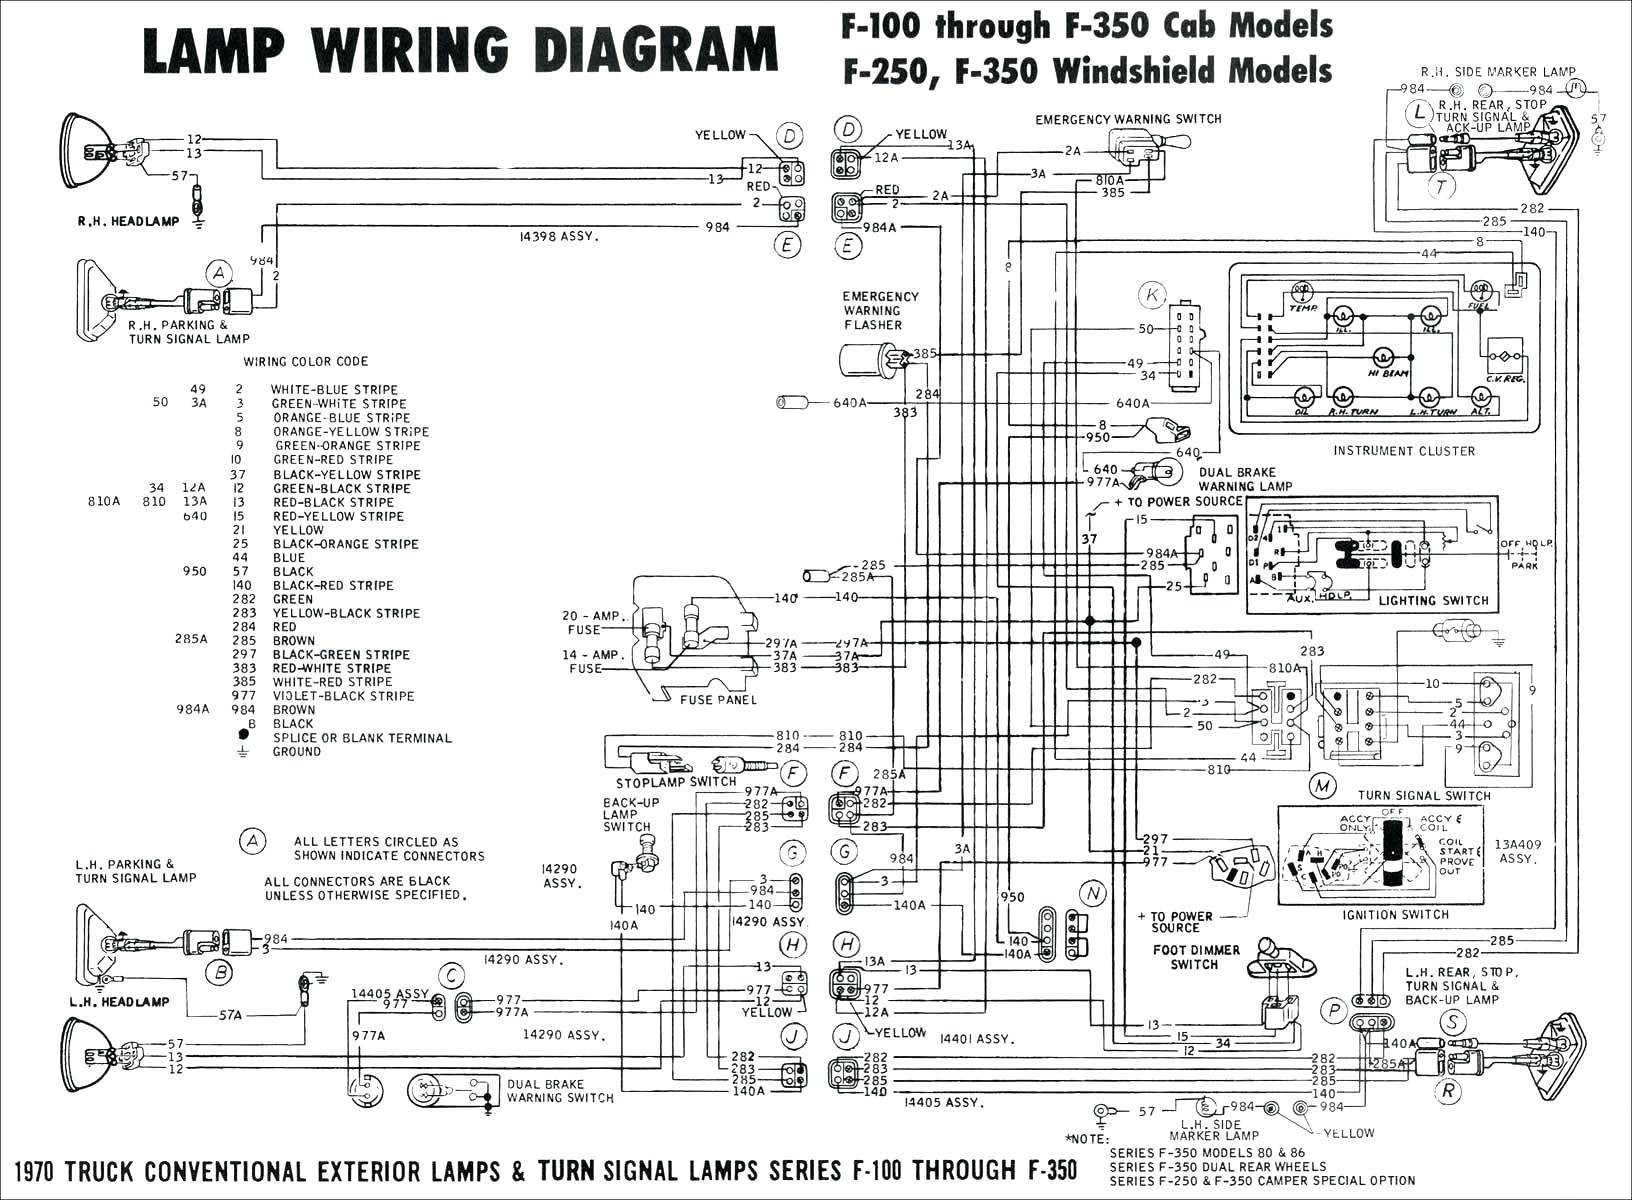 Audi A2 Engine Diagram Wiring Diagram for Audi A4 1997 New